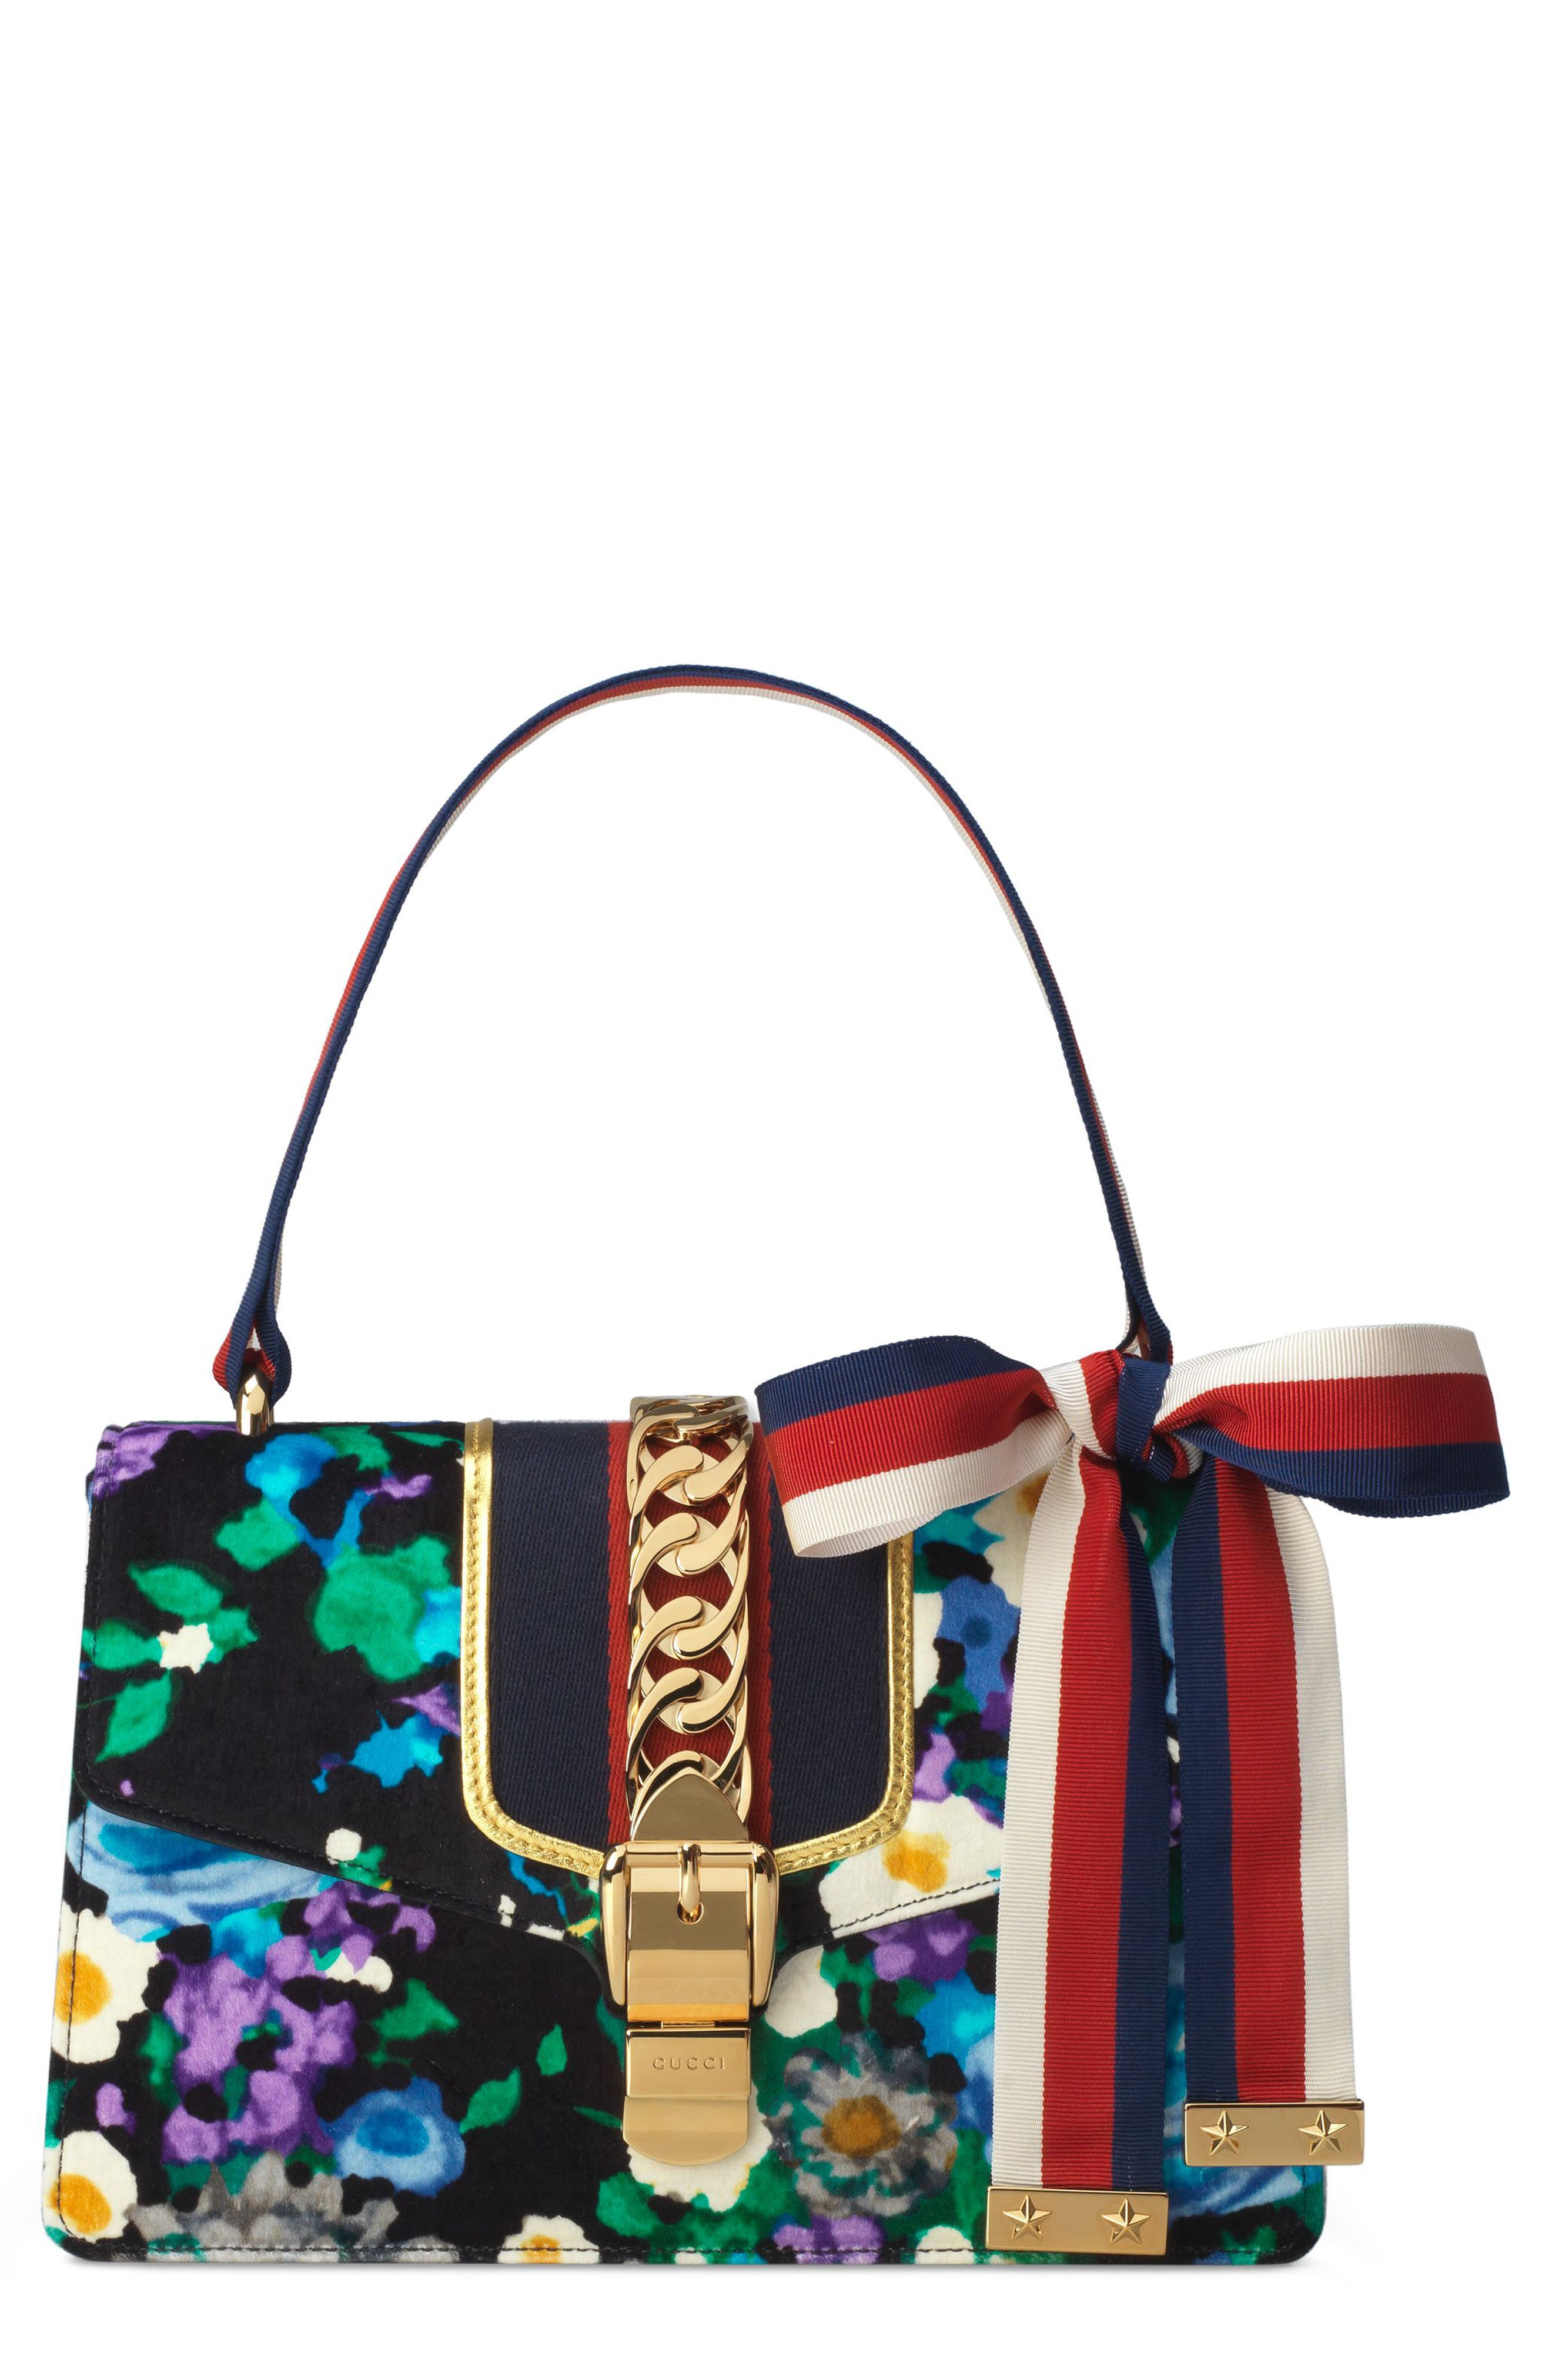 GUCCI Small Floral Print Leather Shoulder Bag, Main, color, 001